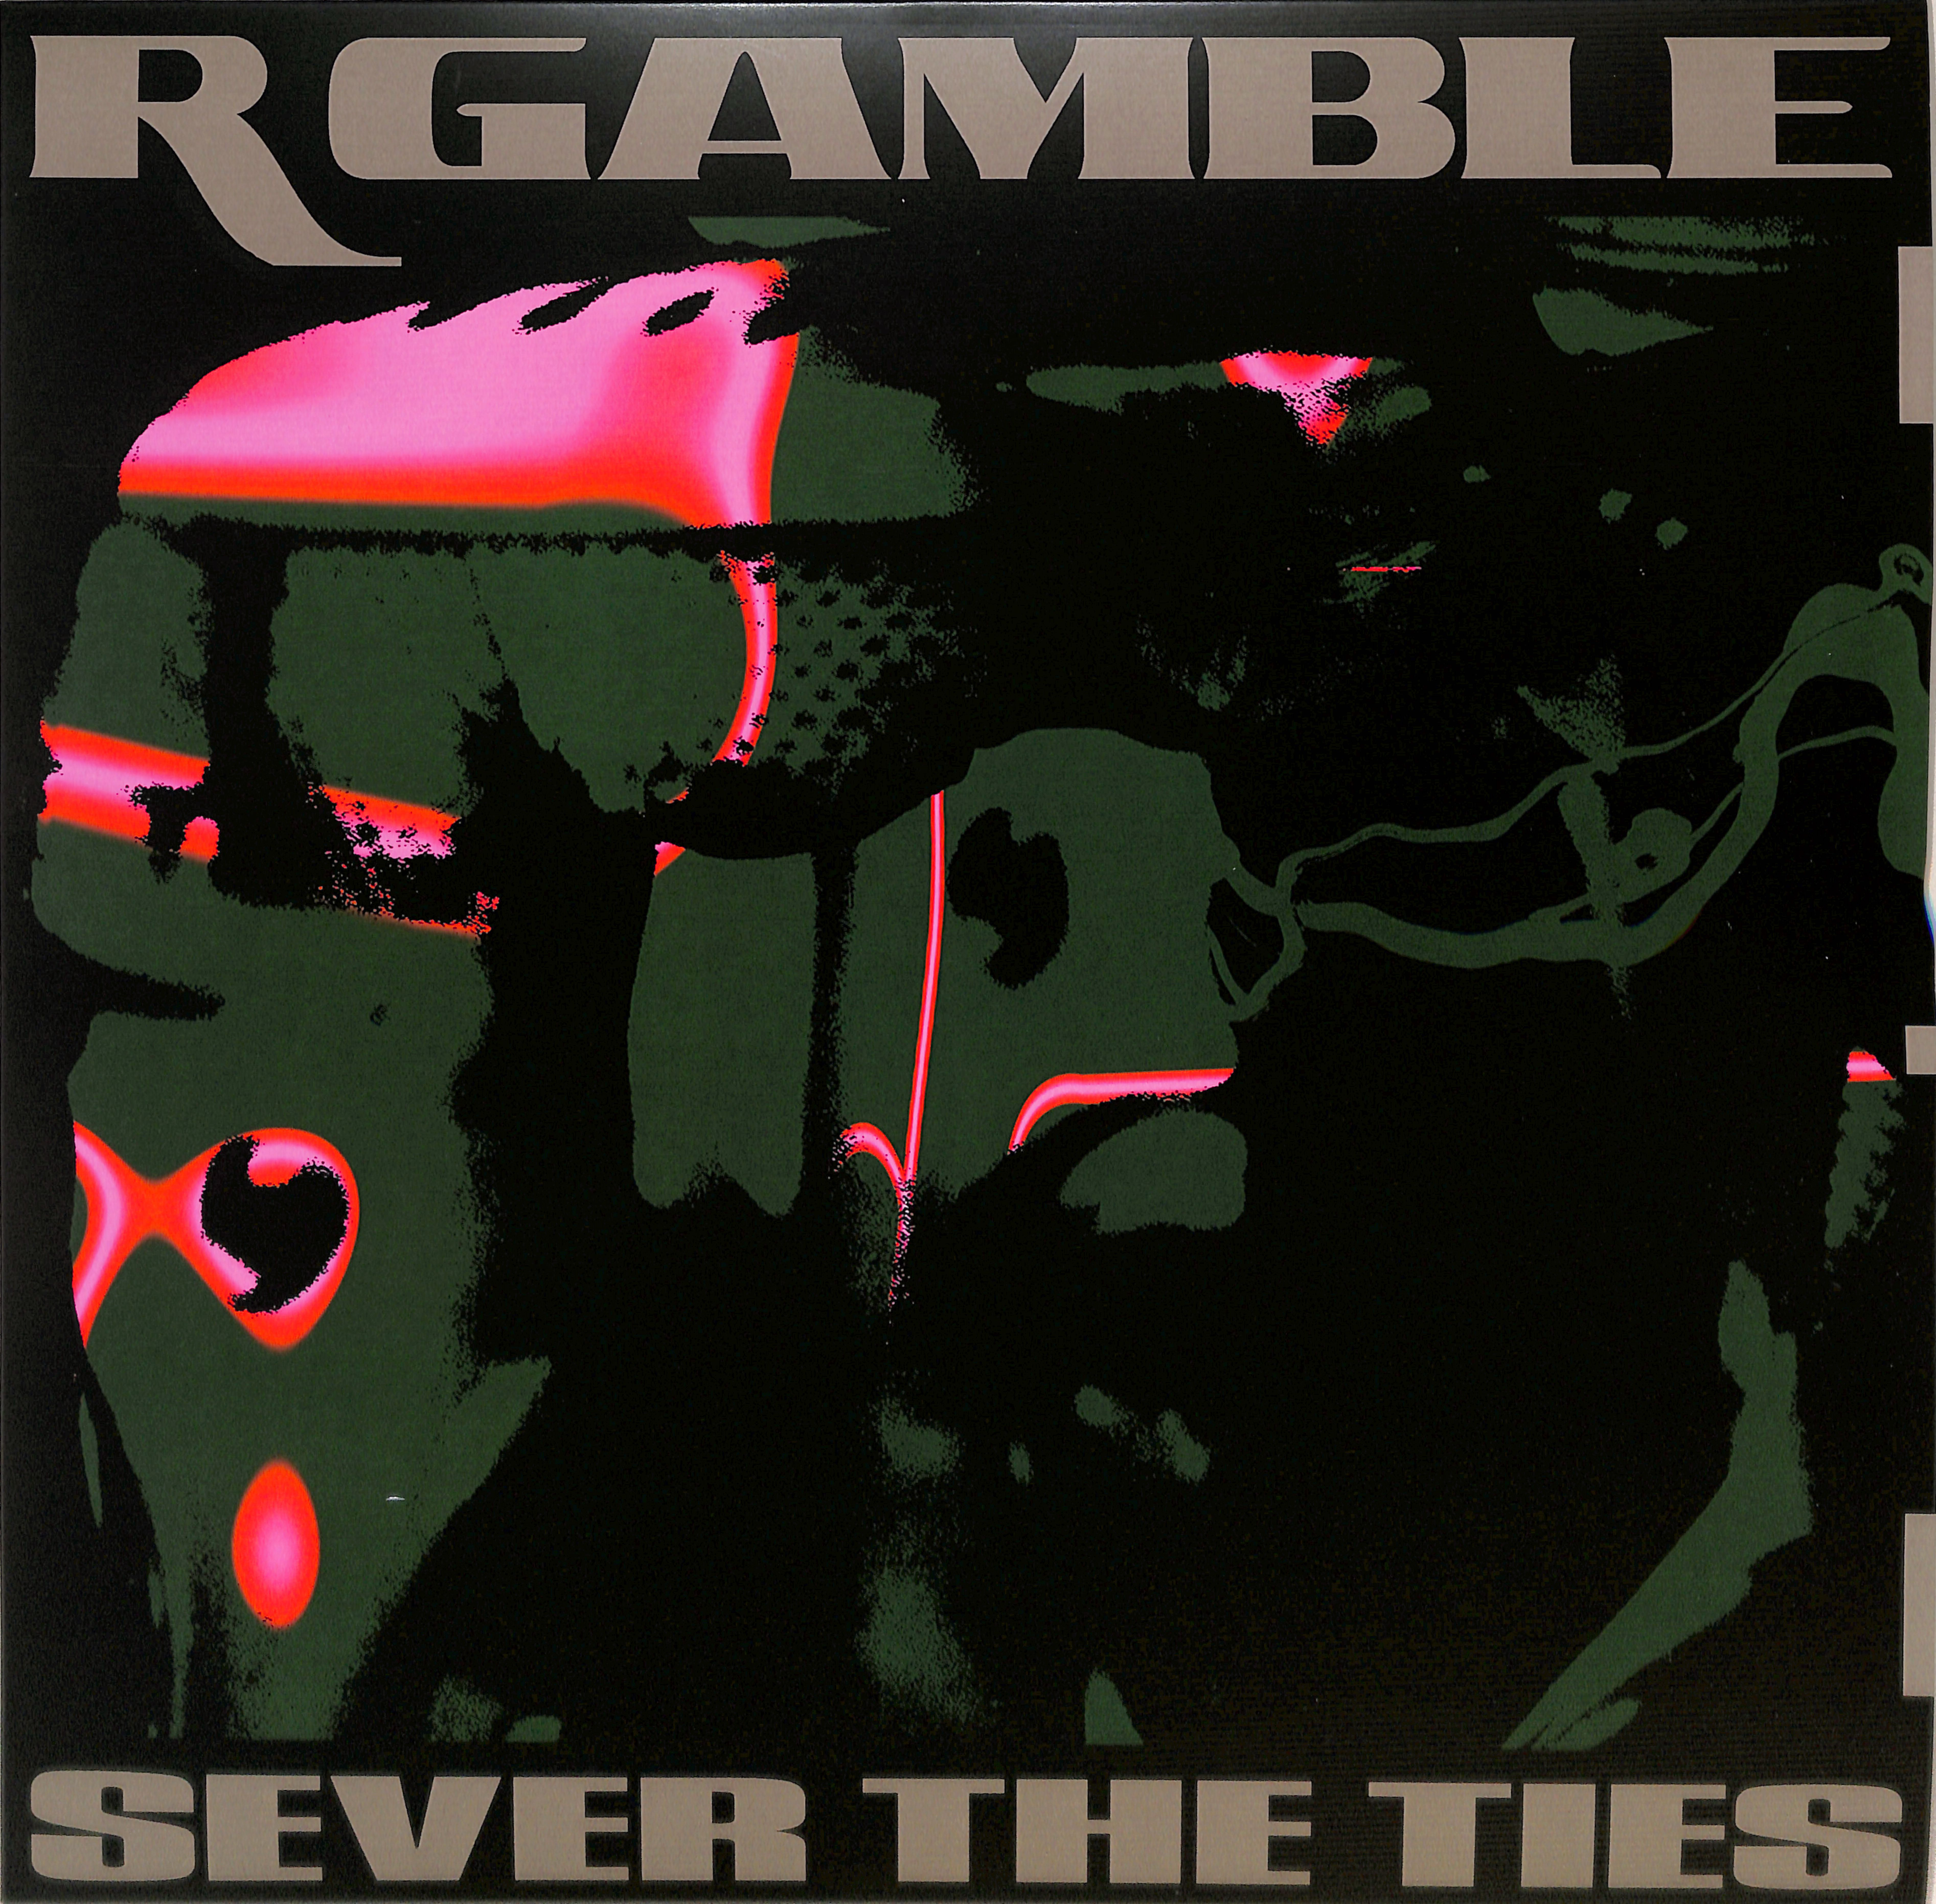 R Gamble - SEVER THE TIES